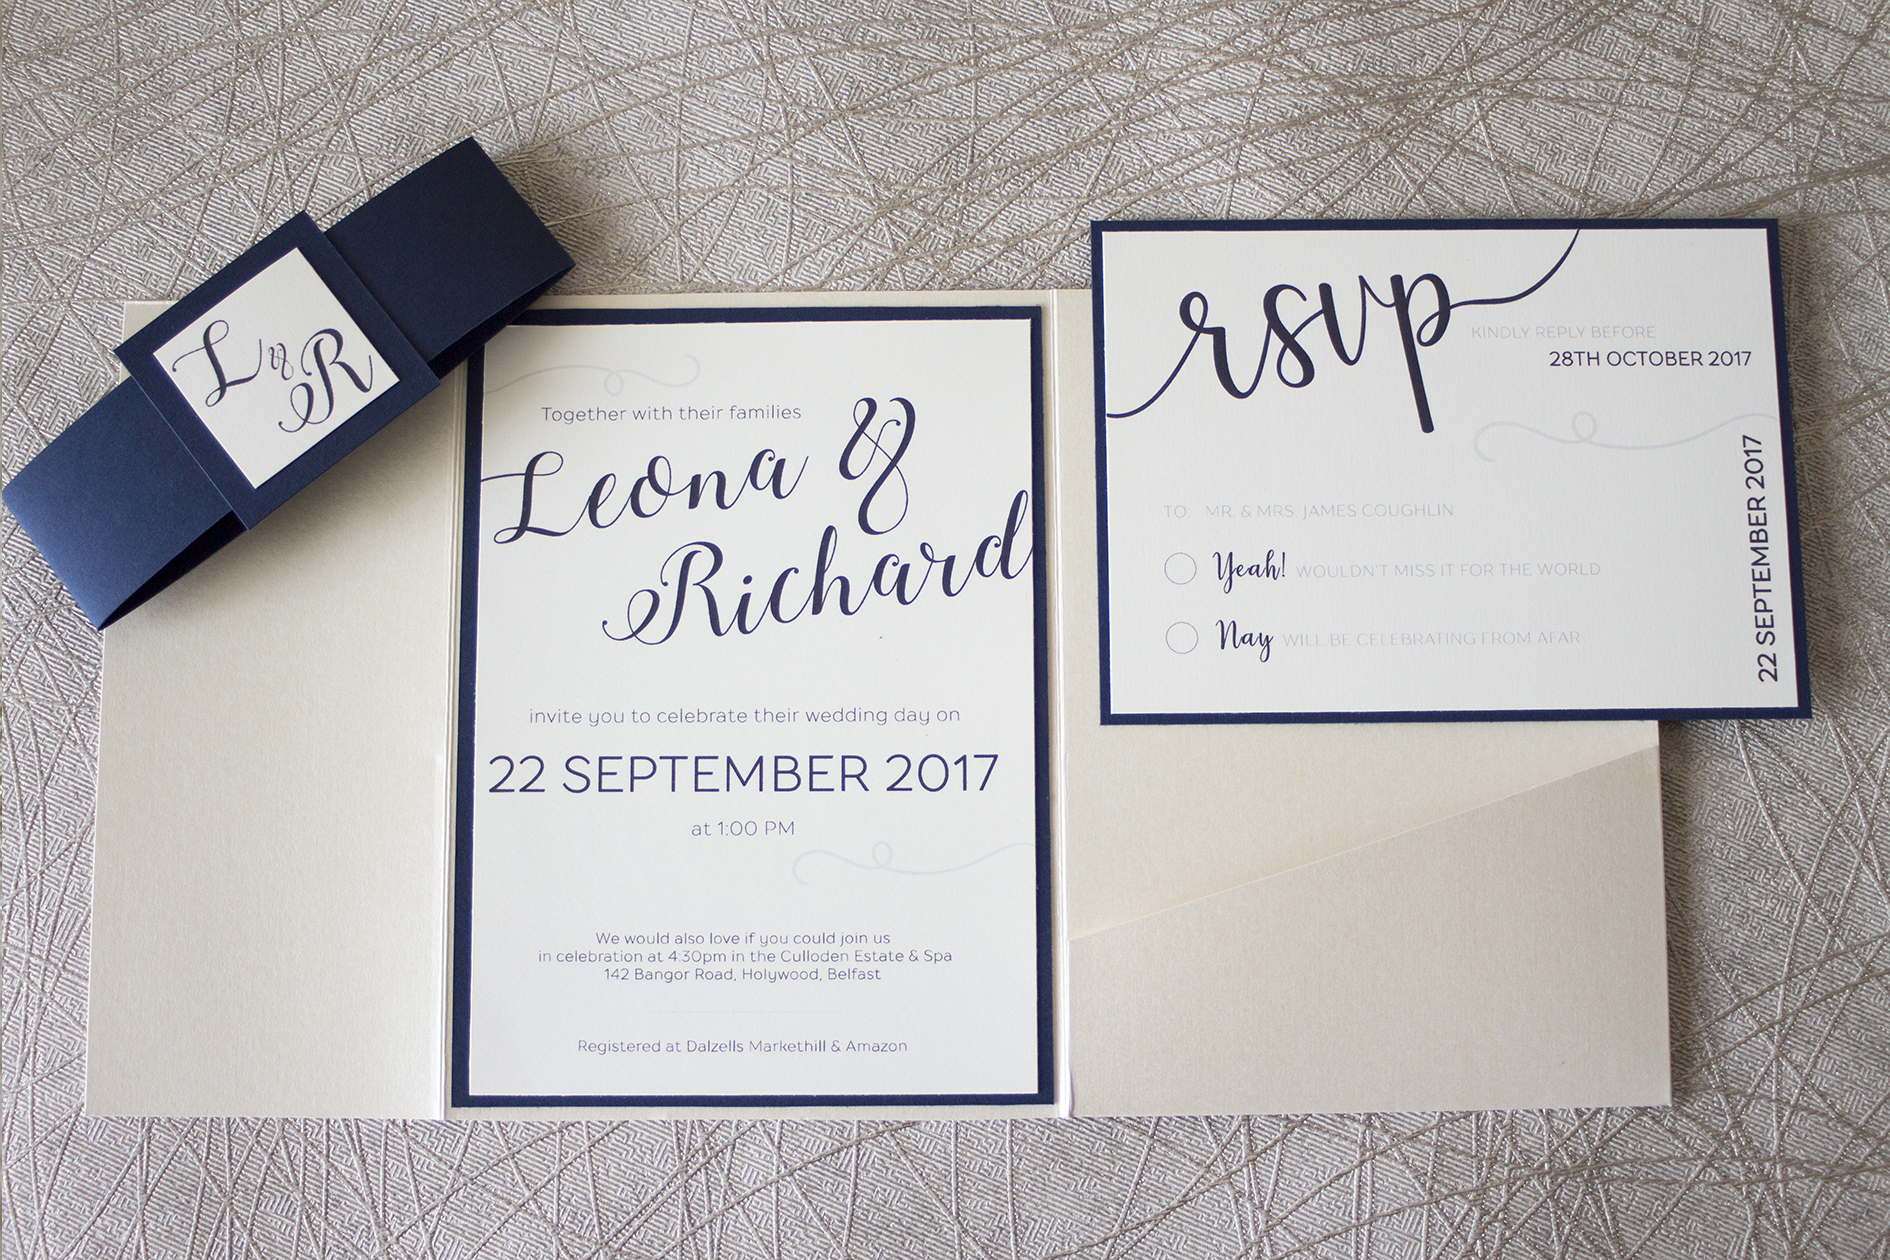 Sample wedding of Leona & Richard - main invite 3